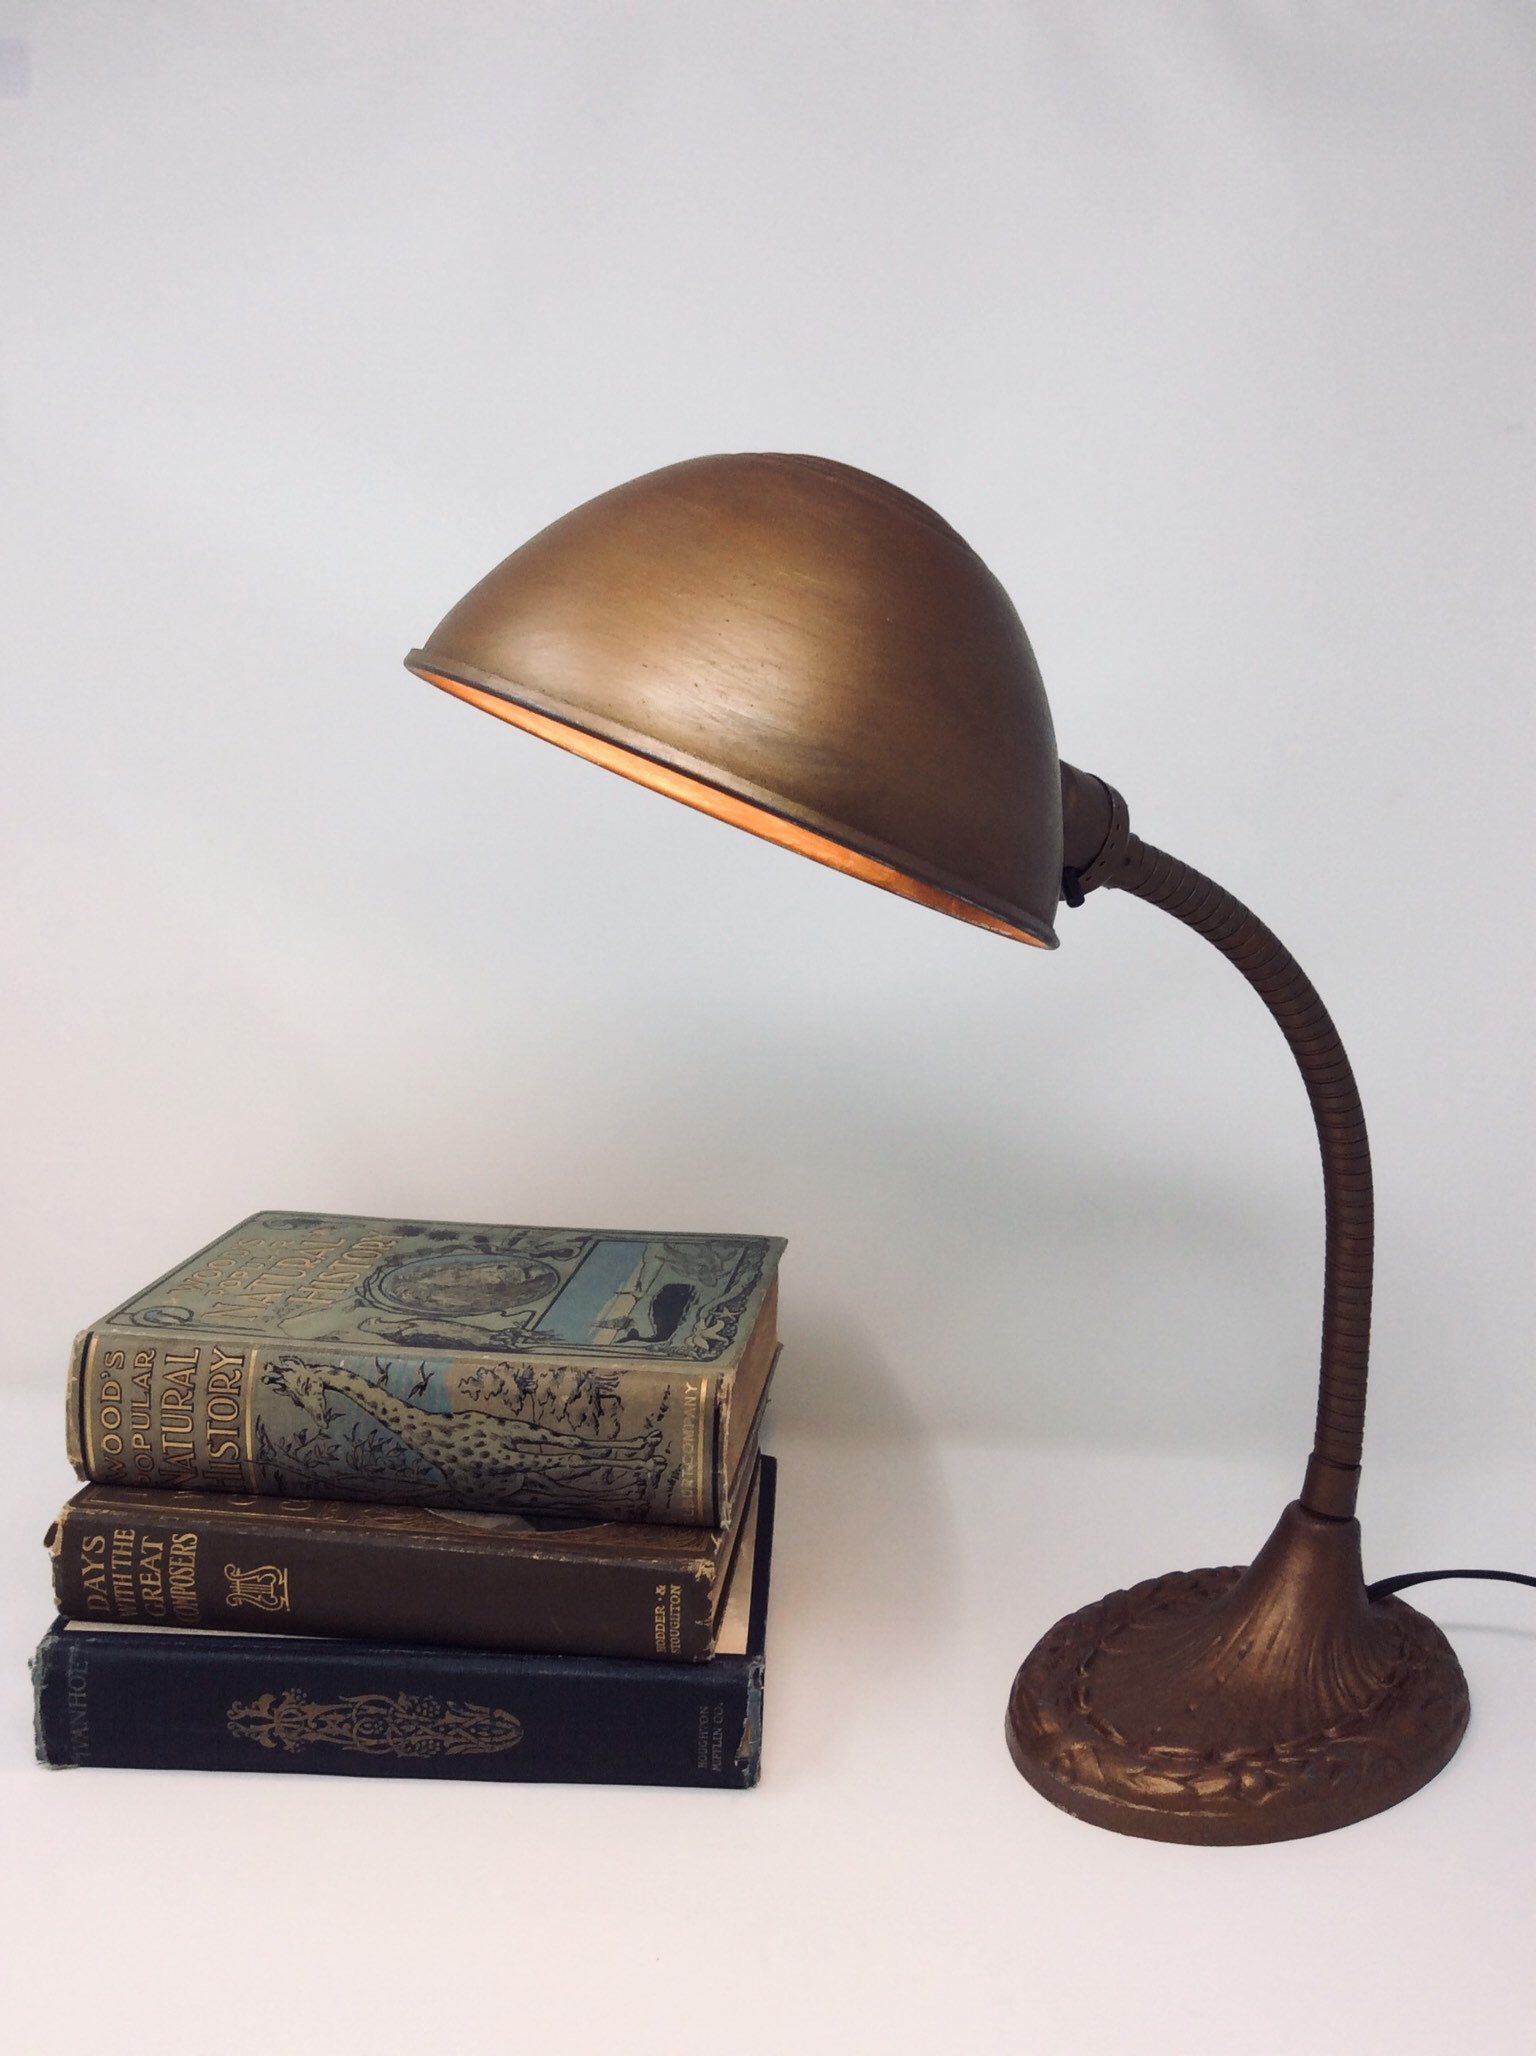 Vintage Gooseneck Desk Lamp 1940s Desk Lamp Lamp Copper Desk Lamps